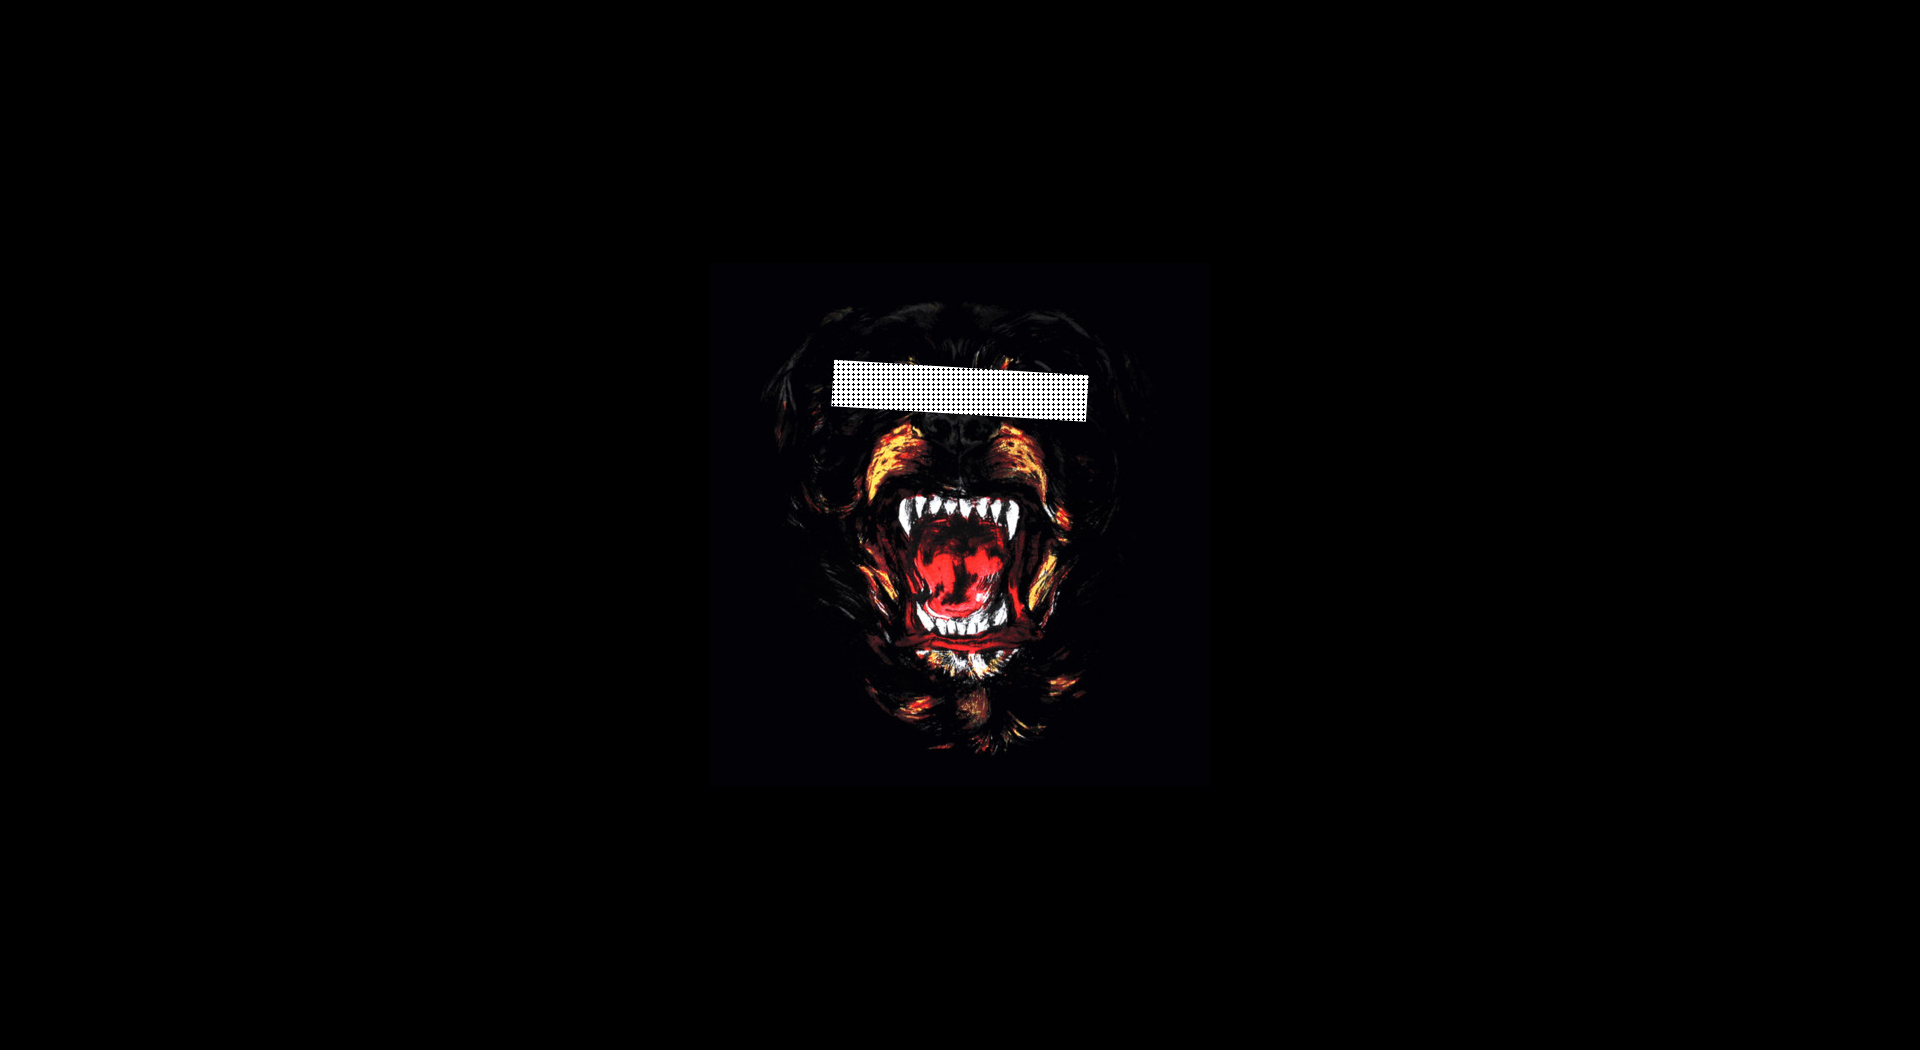 download givenchy dog wallpaper gallery